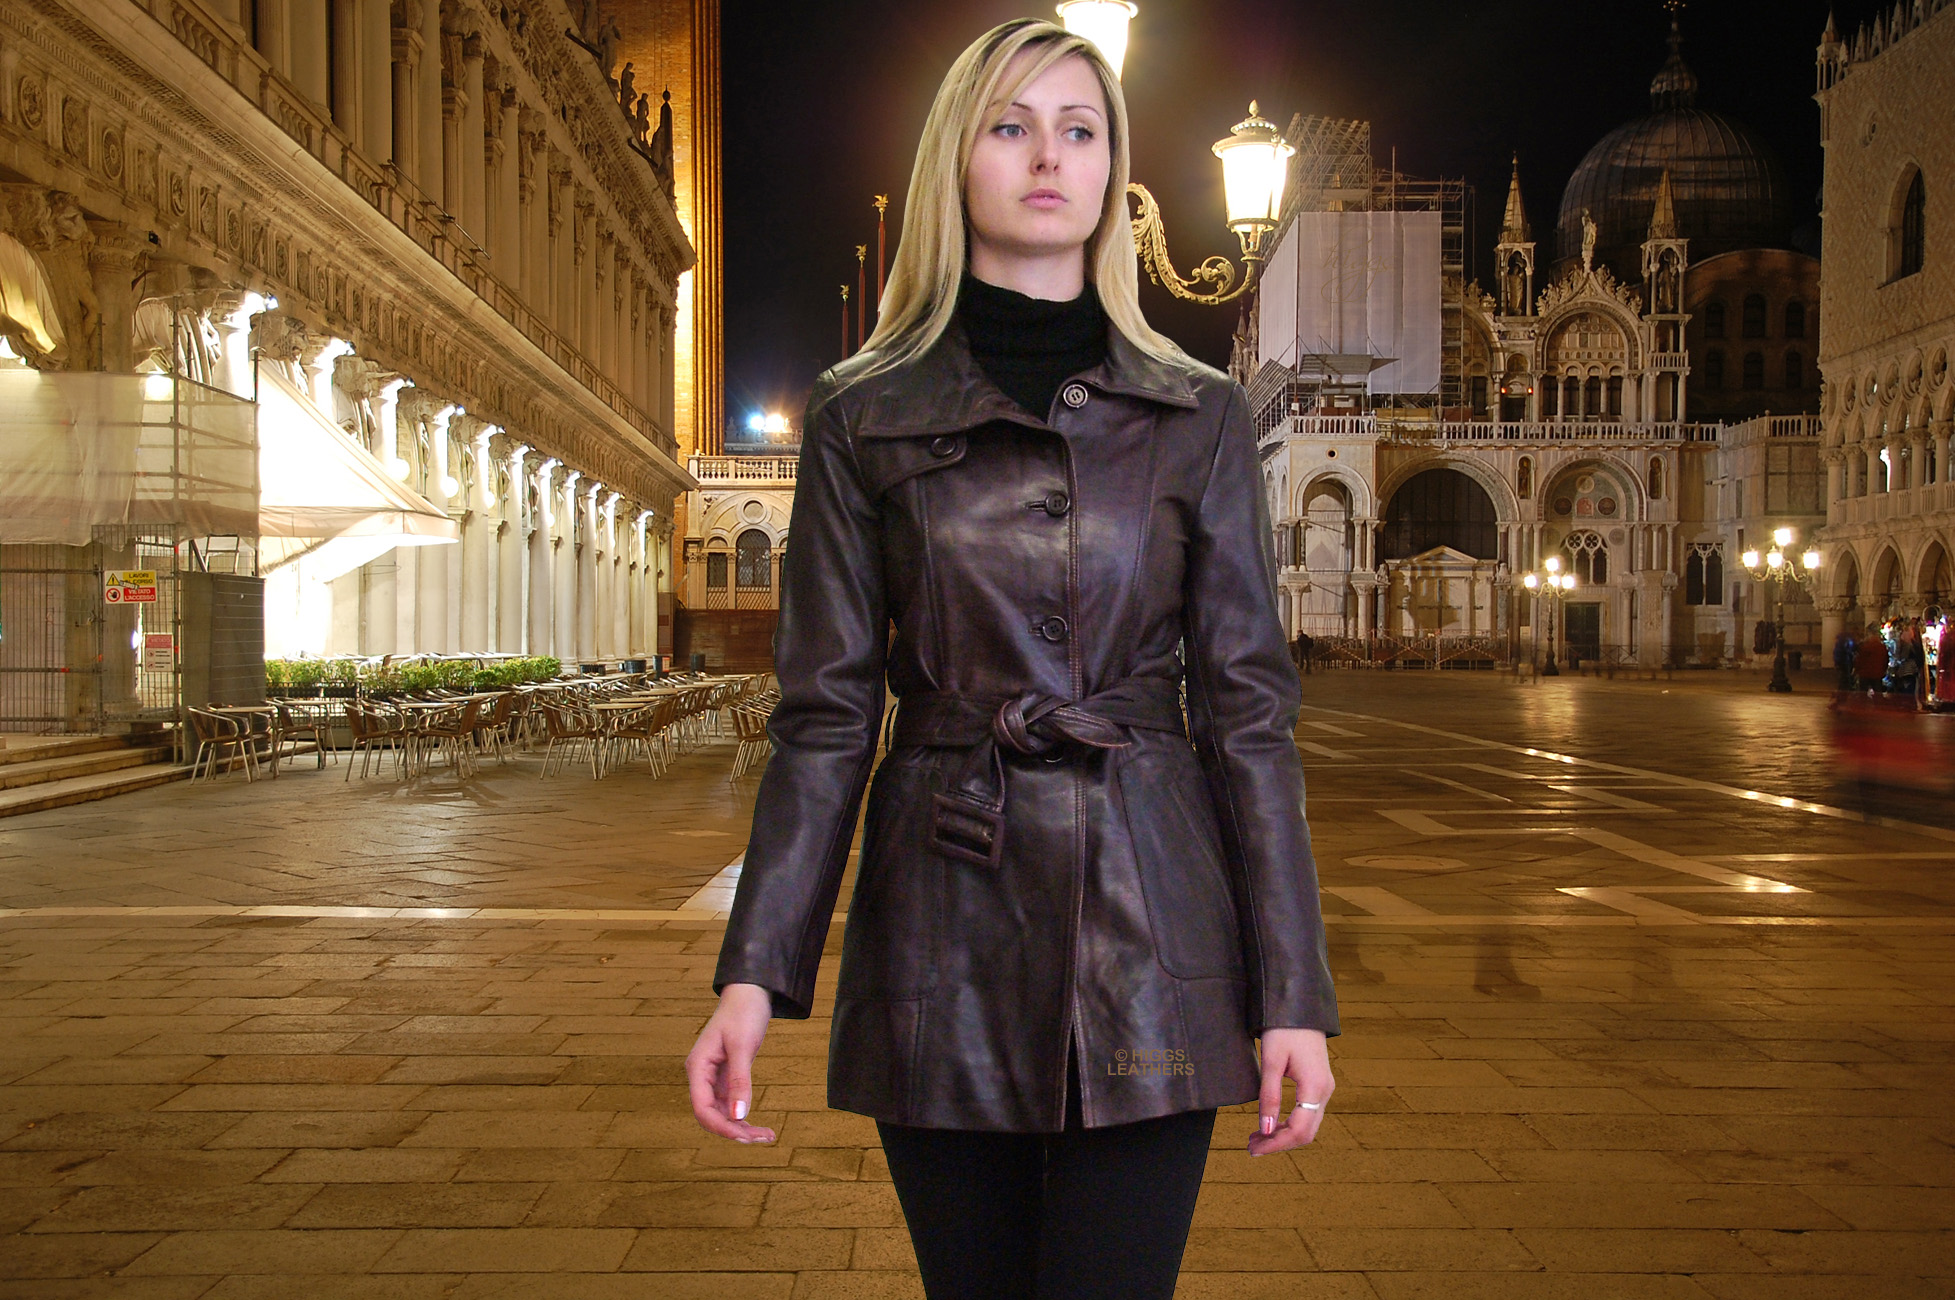 Higgs Leathers Trish (ladies Leather Trench coats) Venice by night?